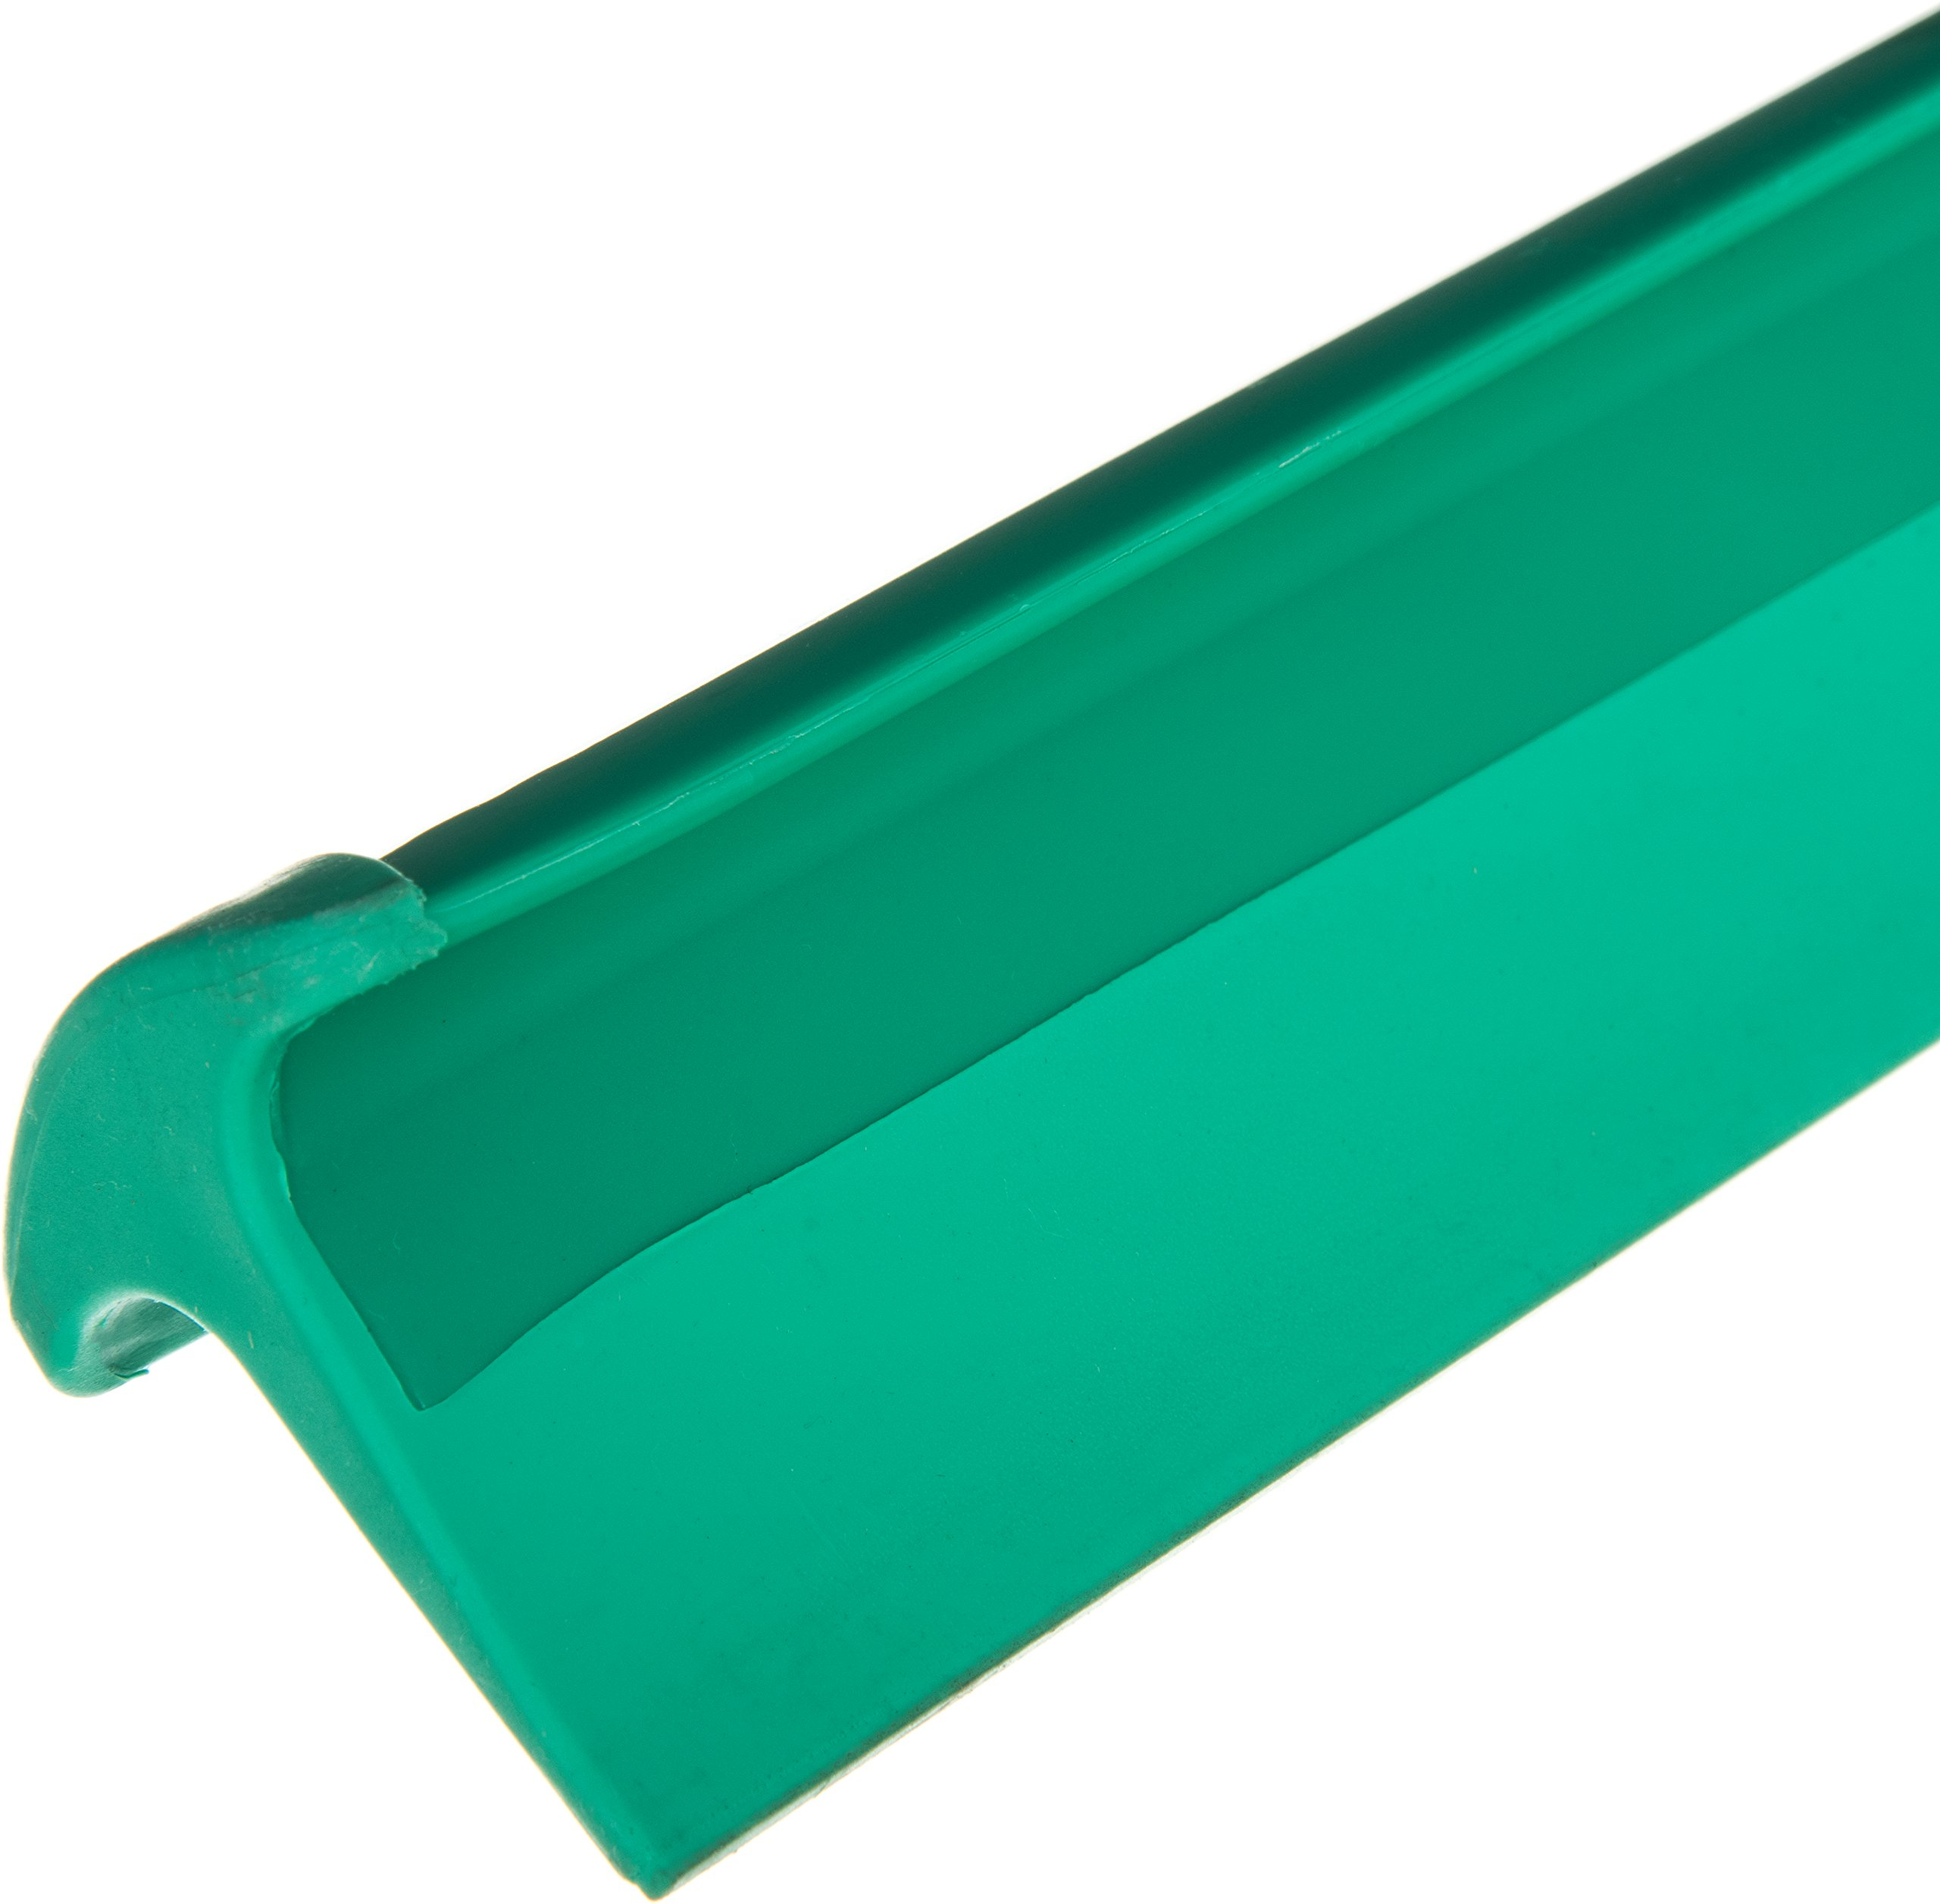 Carlisle 3656809 Solid One-Piece Foam Rubber Head Floor Squeegee, 24'' Length, Green by Carlisle (Image #4)